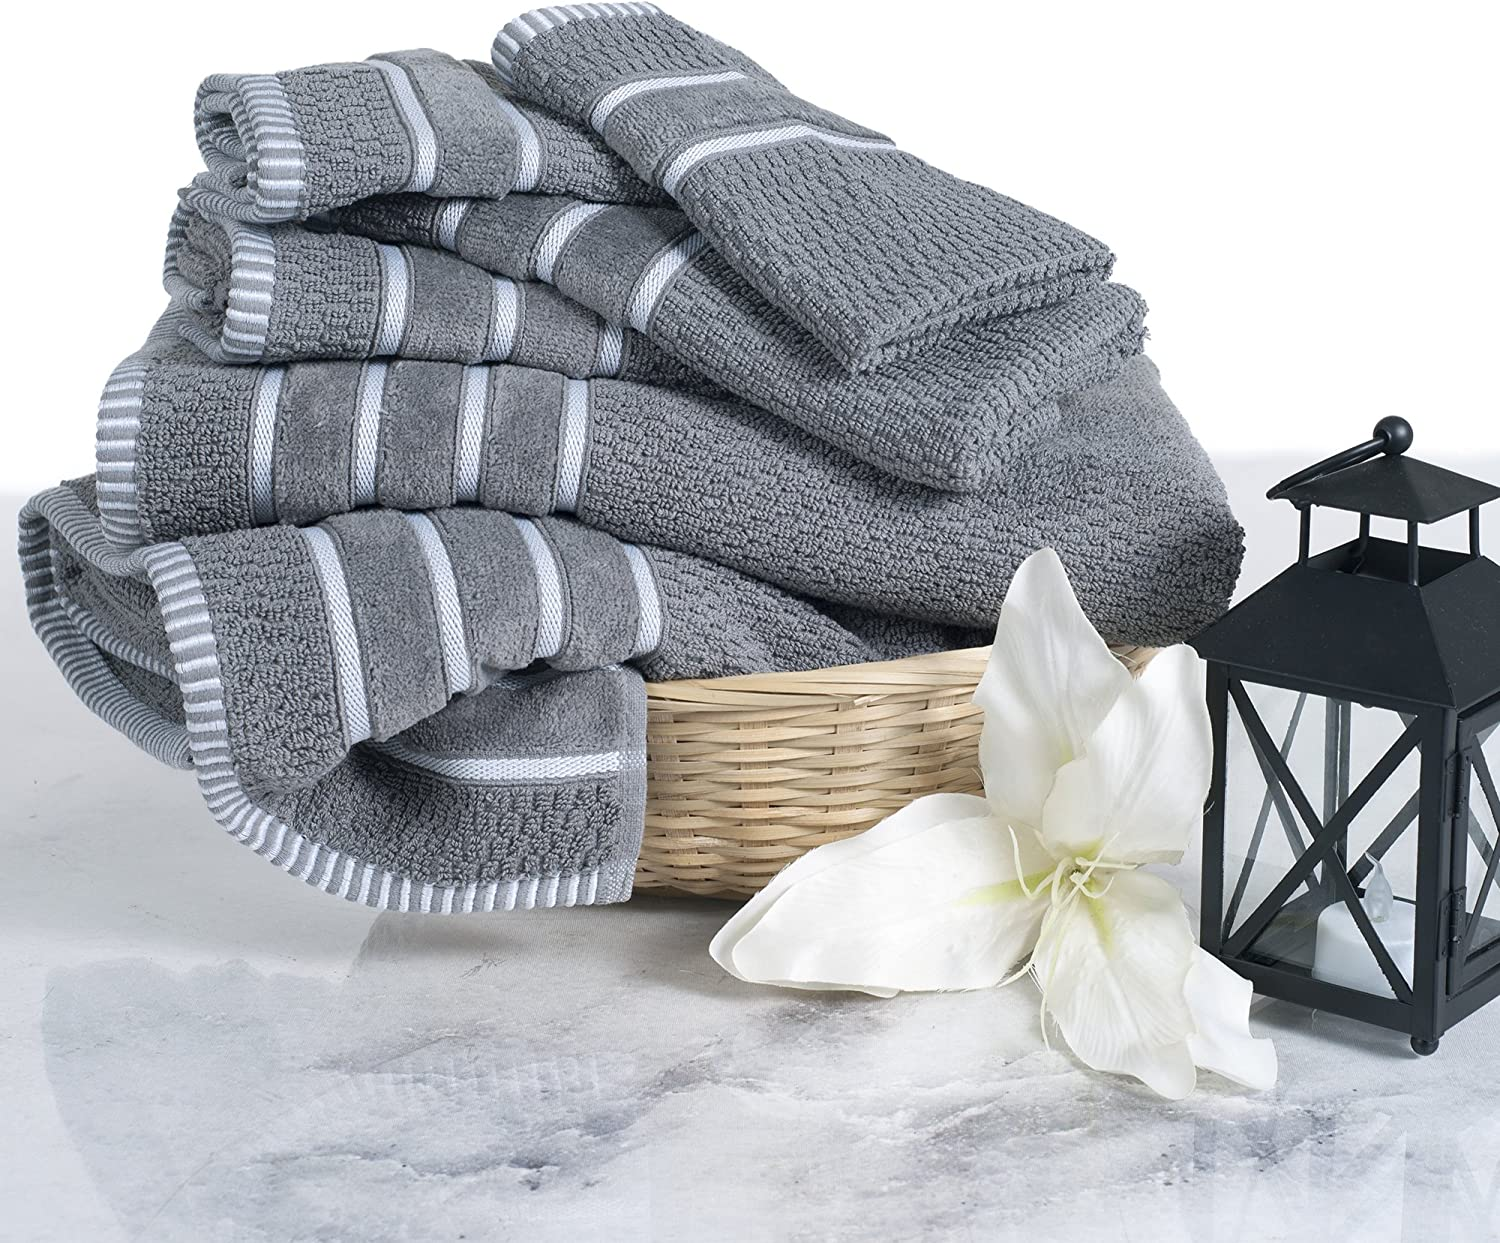 Luxury Cotton Towel Set - Rice Weave 100% Egyptian Cotton 6 Piece Set with 2 Bath Towels, 2 Hand Towels and 2 Washcloths - Silver Gray